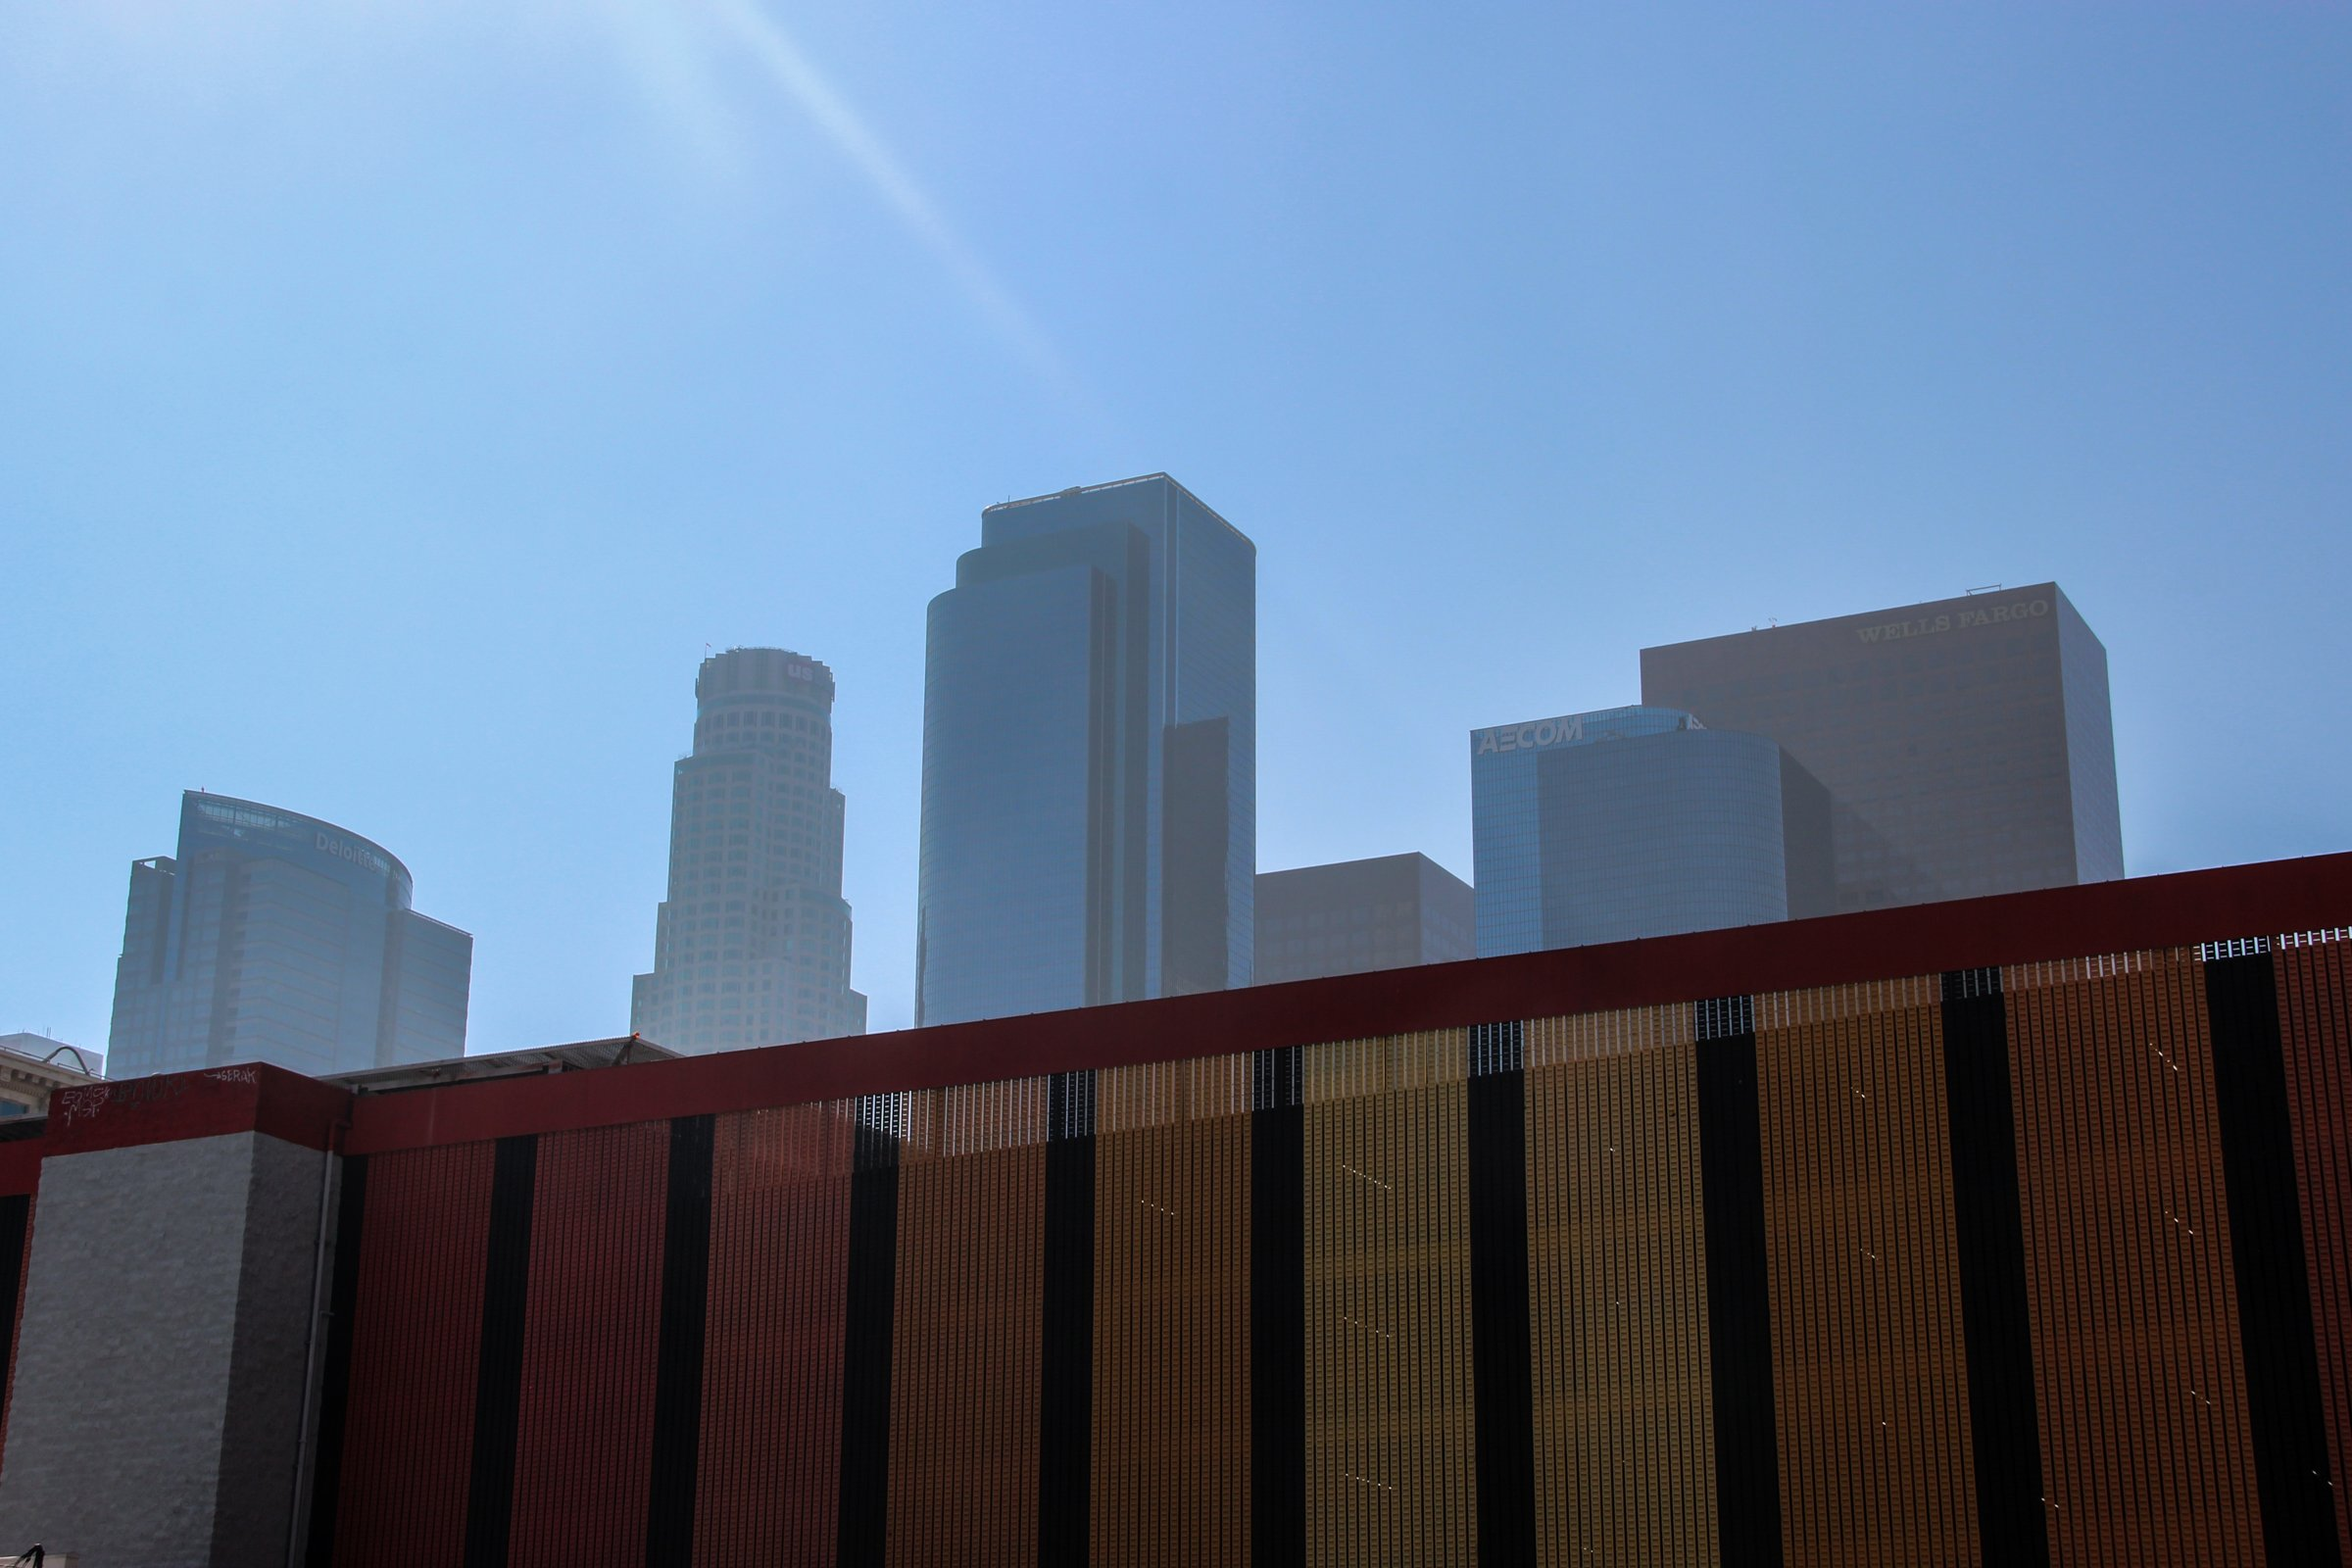 Tall Buildings Beyond Fence